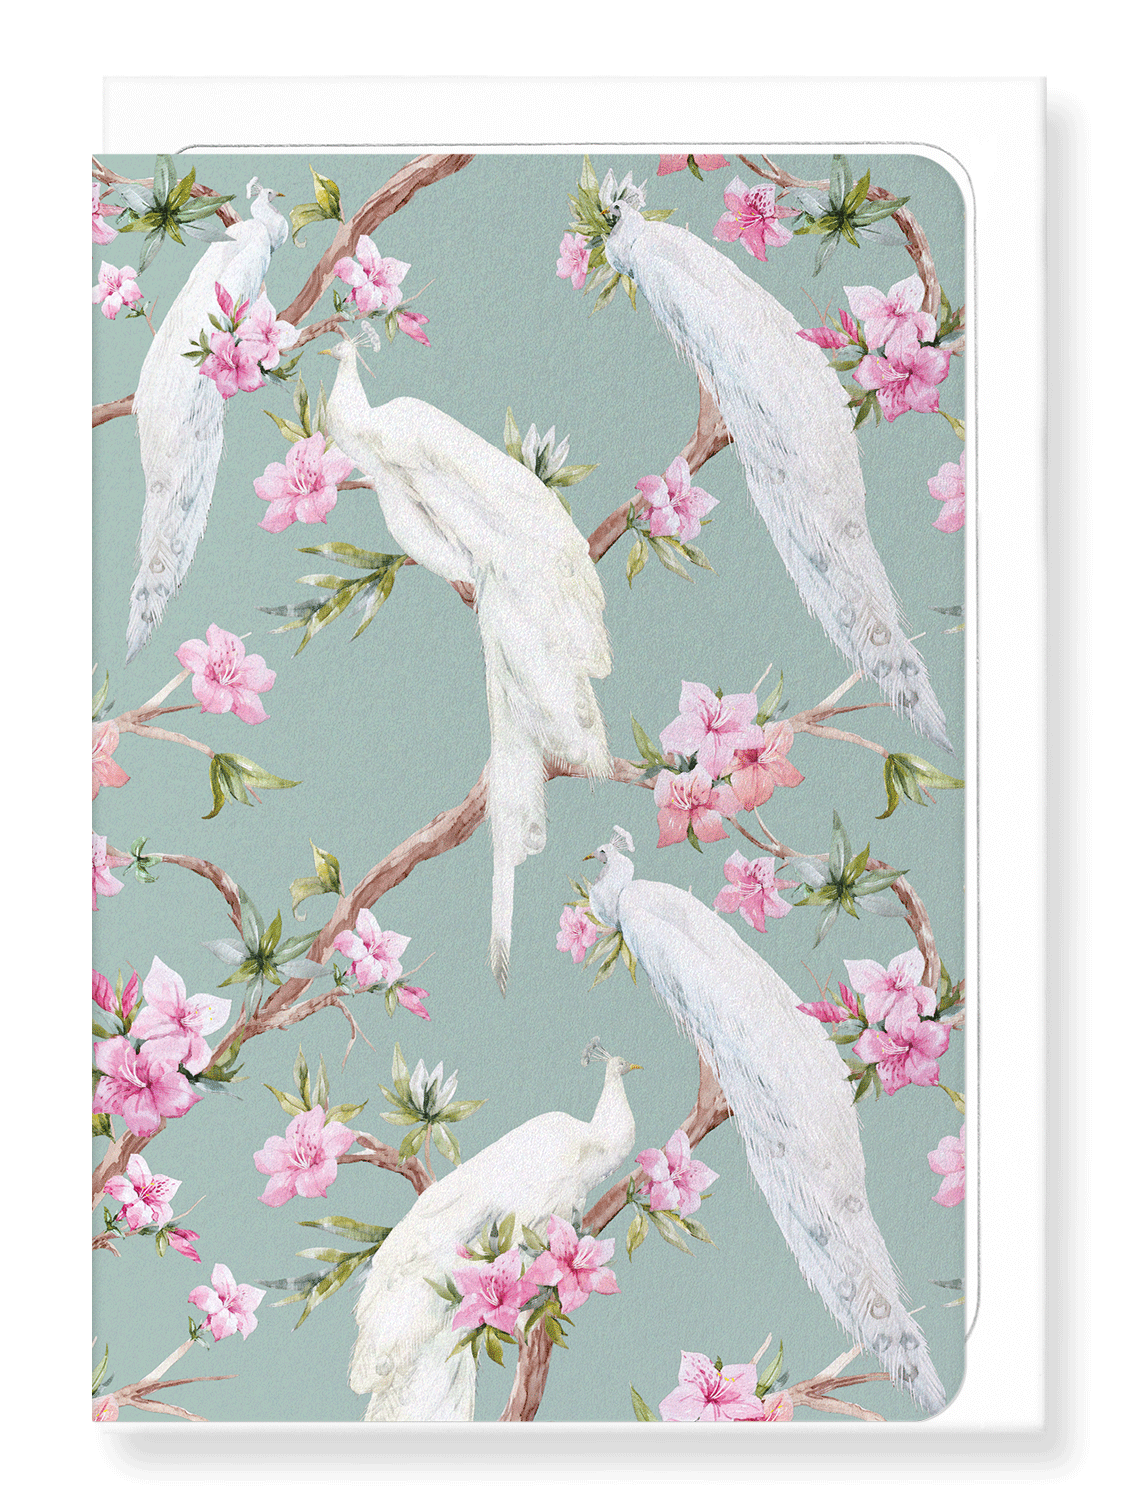 Ezen Designs - White peacocks - Greeting Card - Front